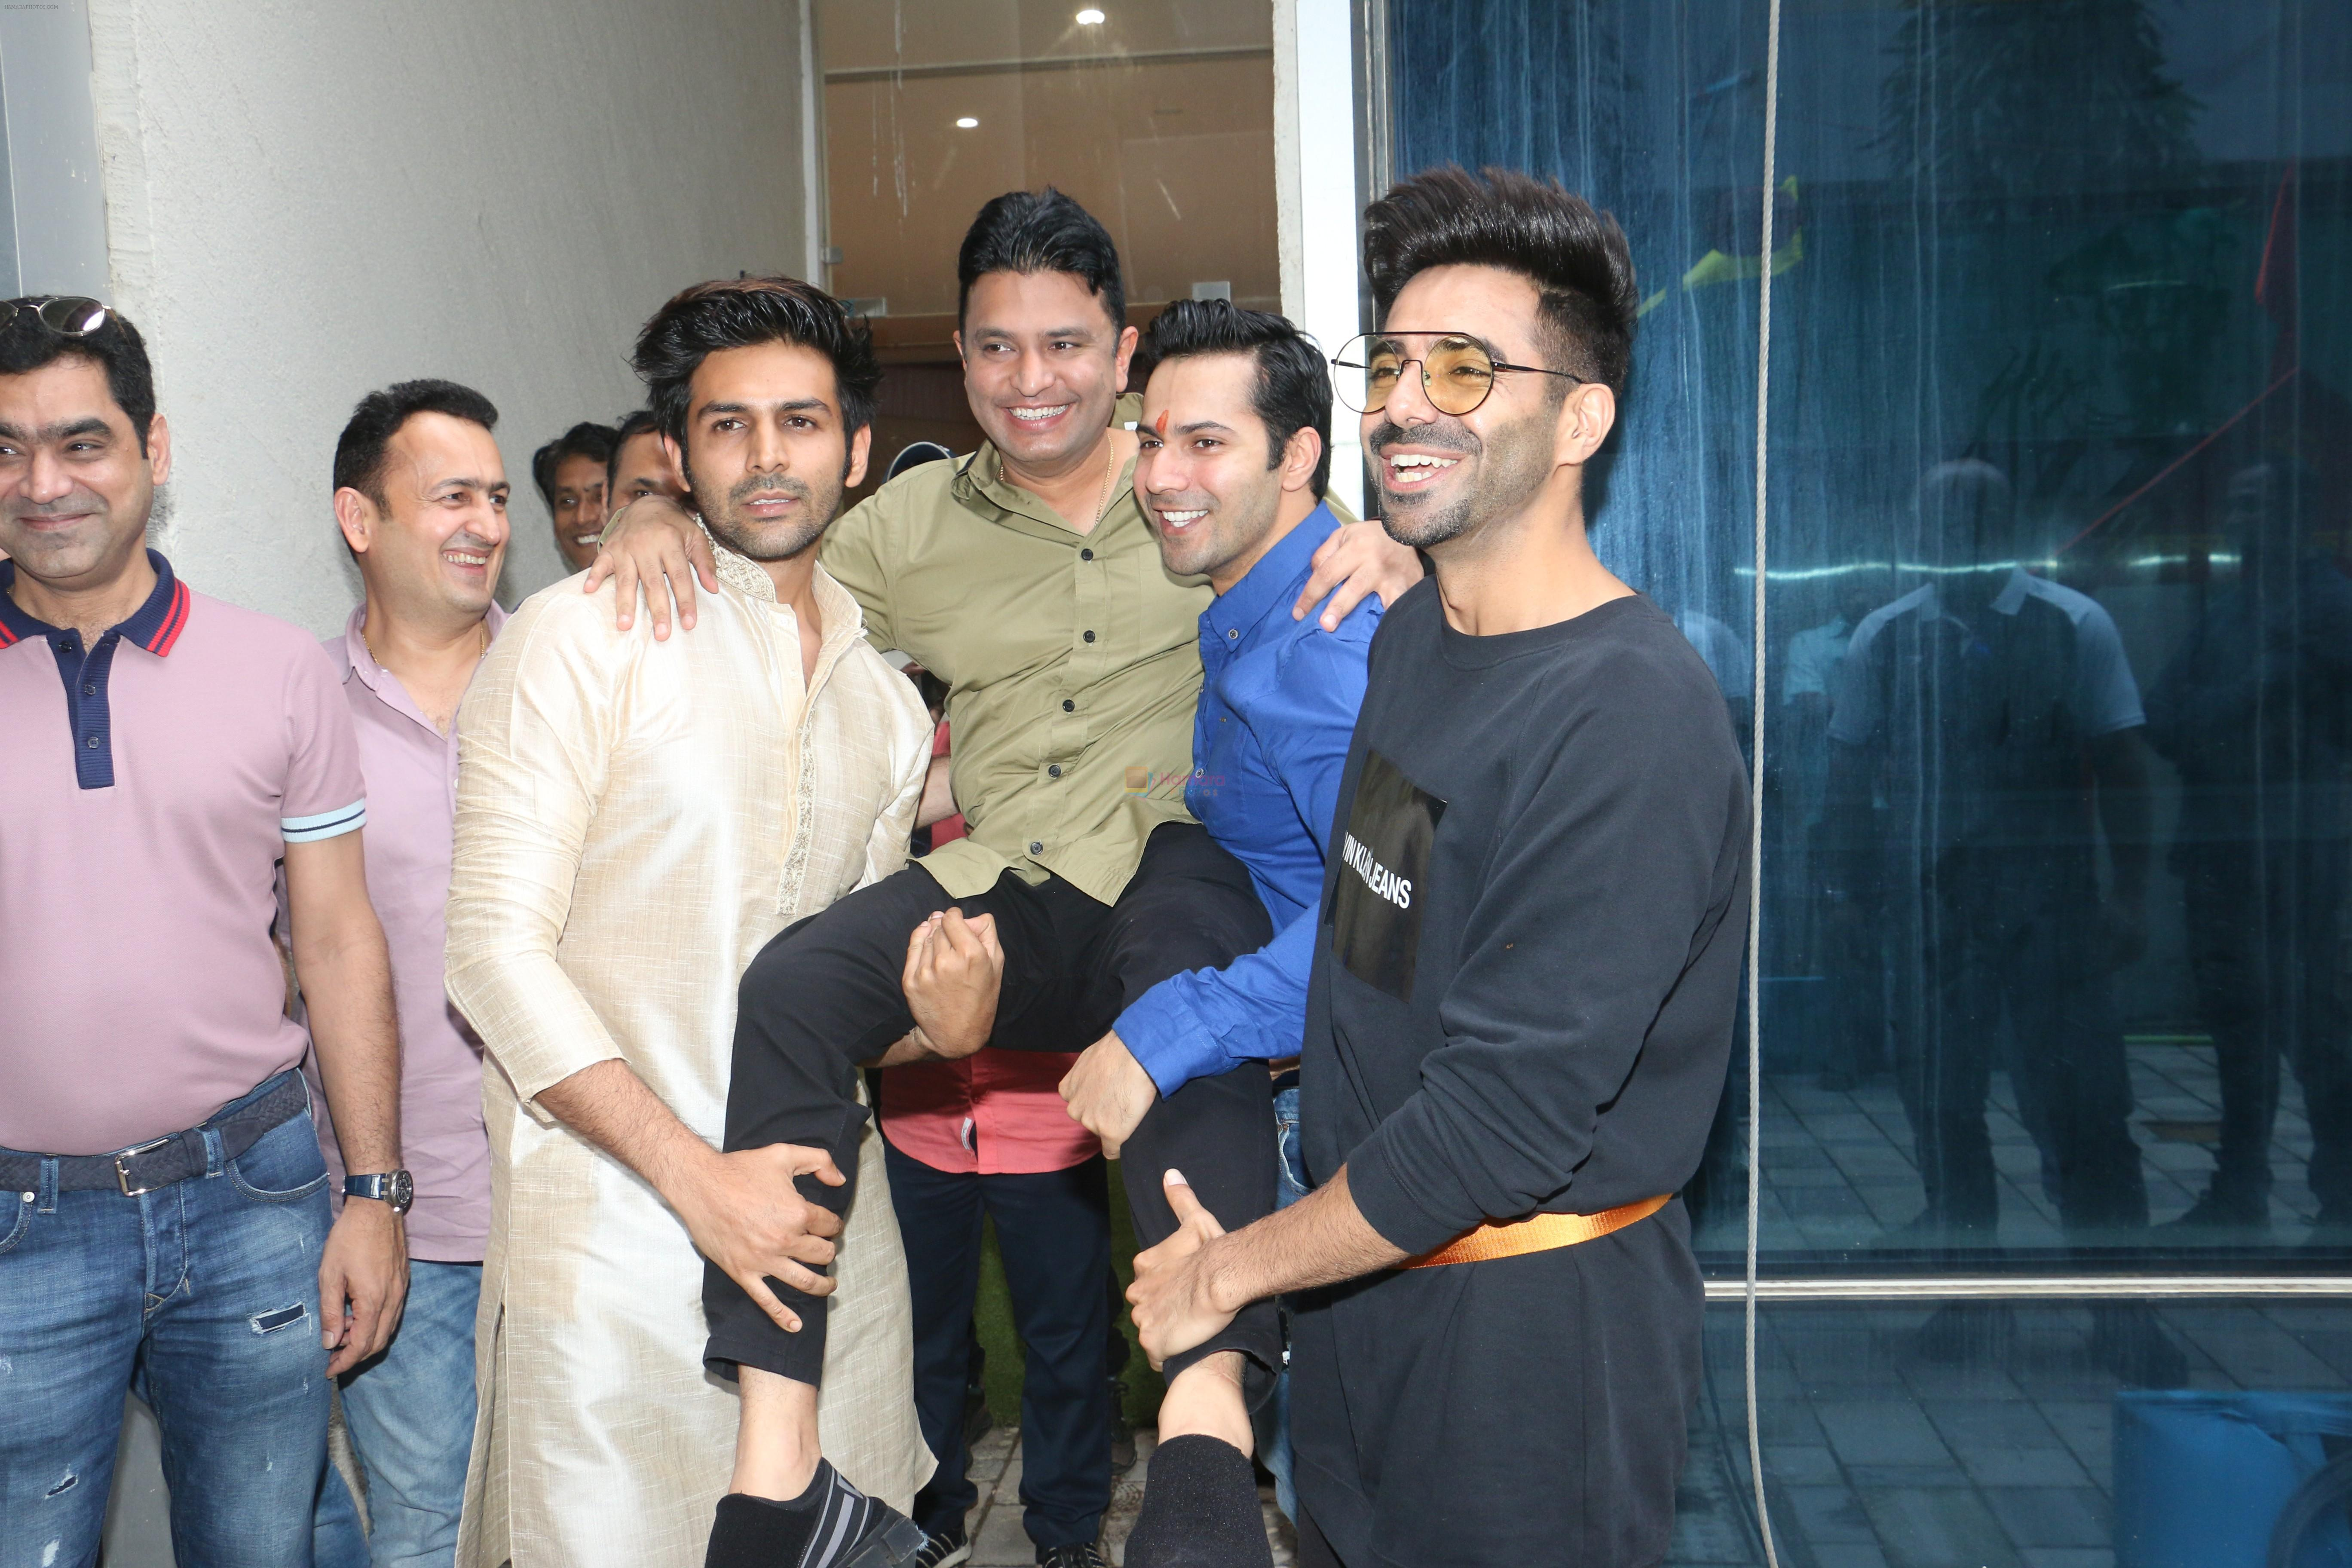 Varun Dhawan, Kartik Aaryan, Bhushan Kumar at Tseries office in andheri for Ganesh darshan on 12th Sept 2019